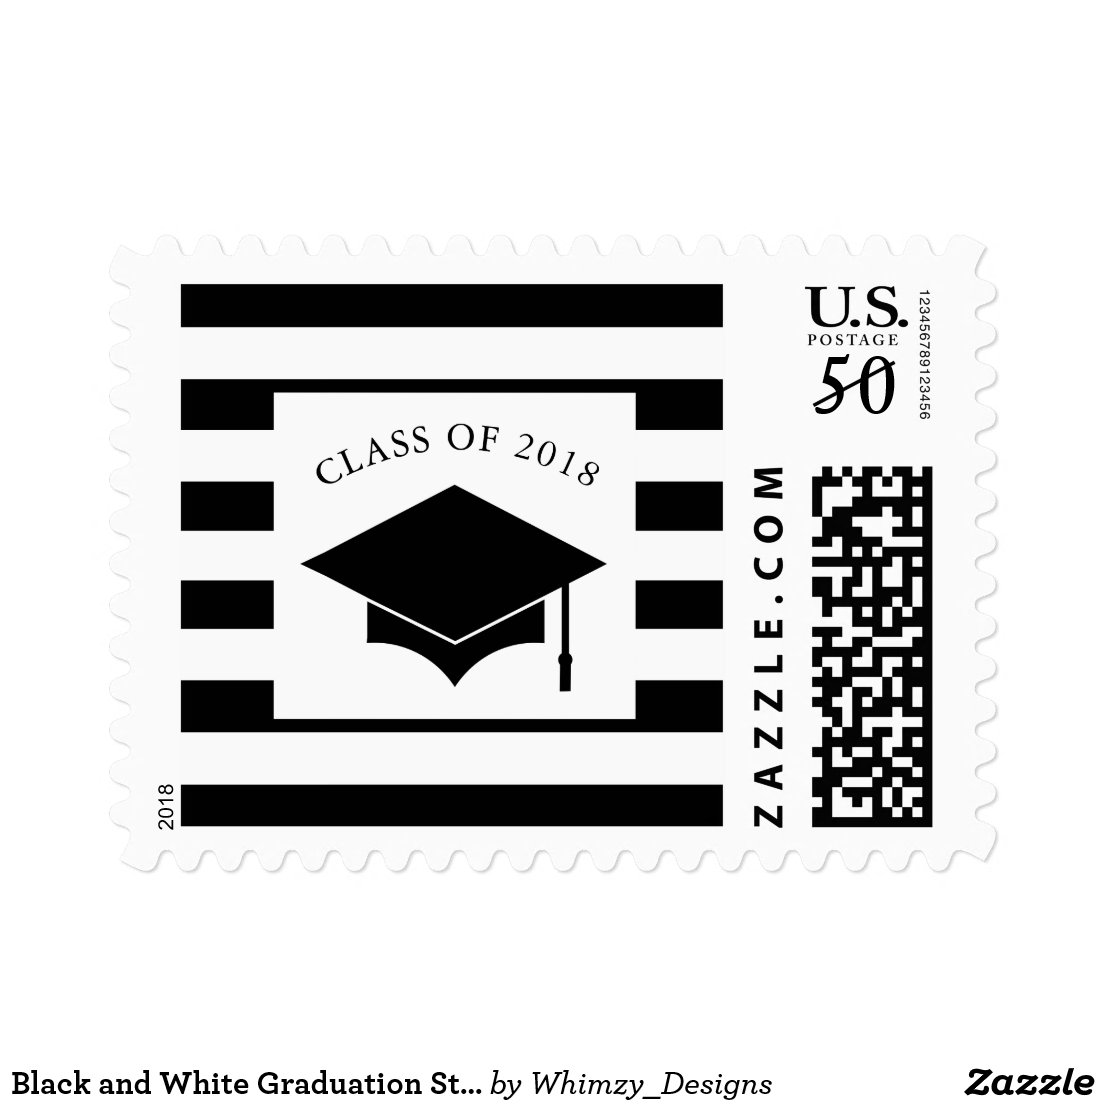 Black and White Graduation Stamps